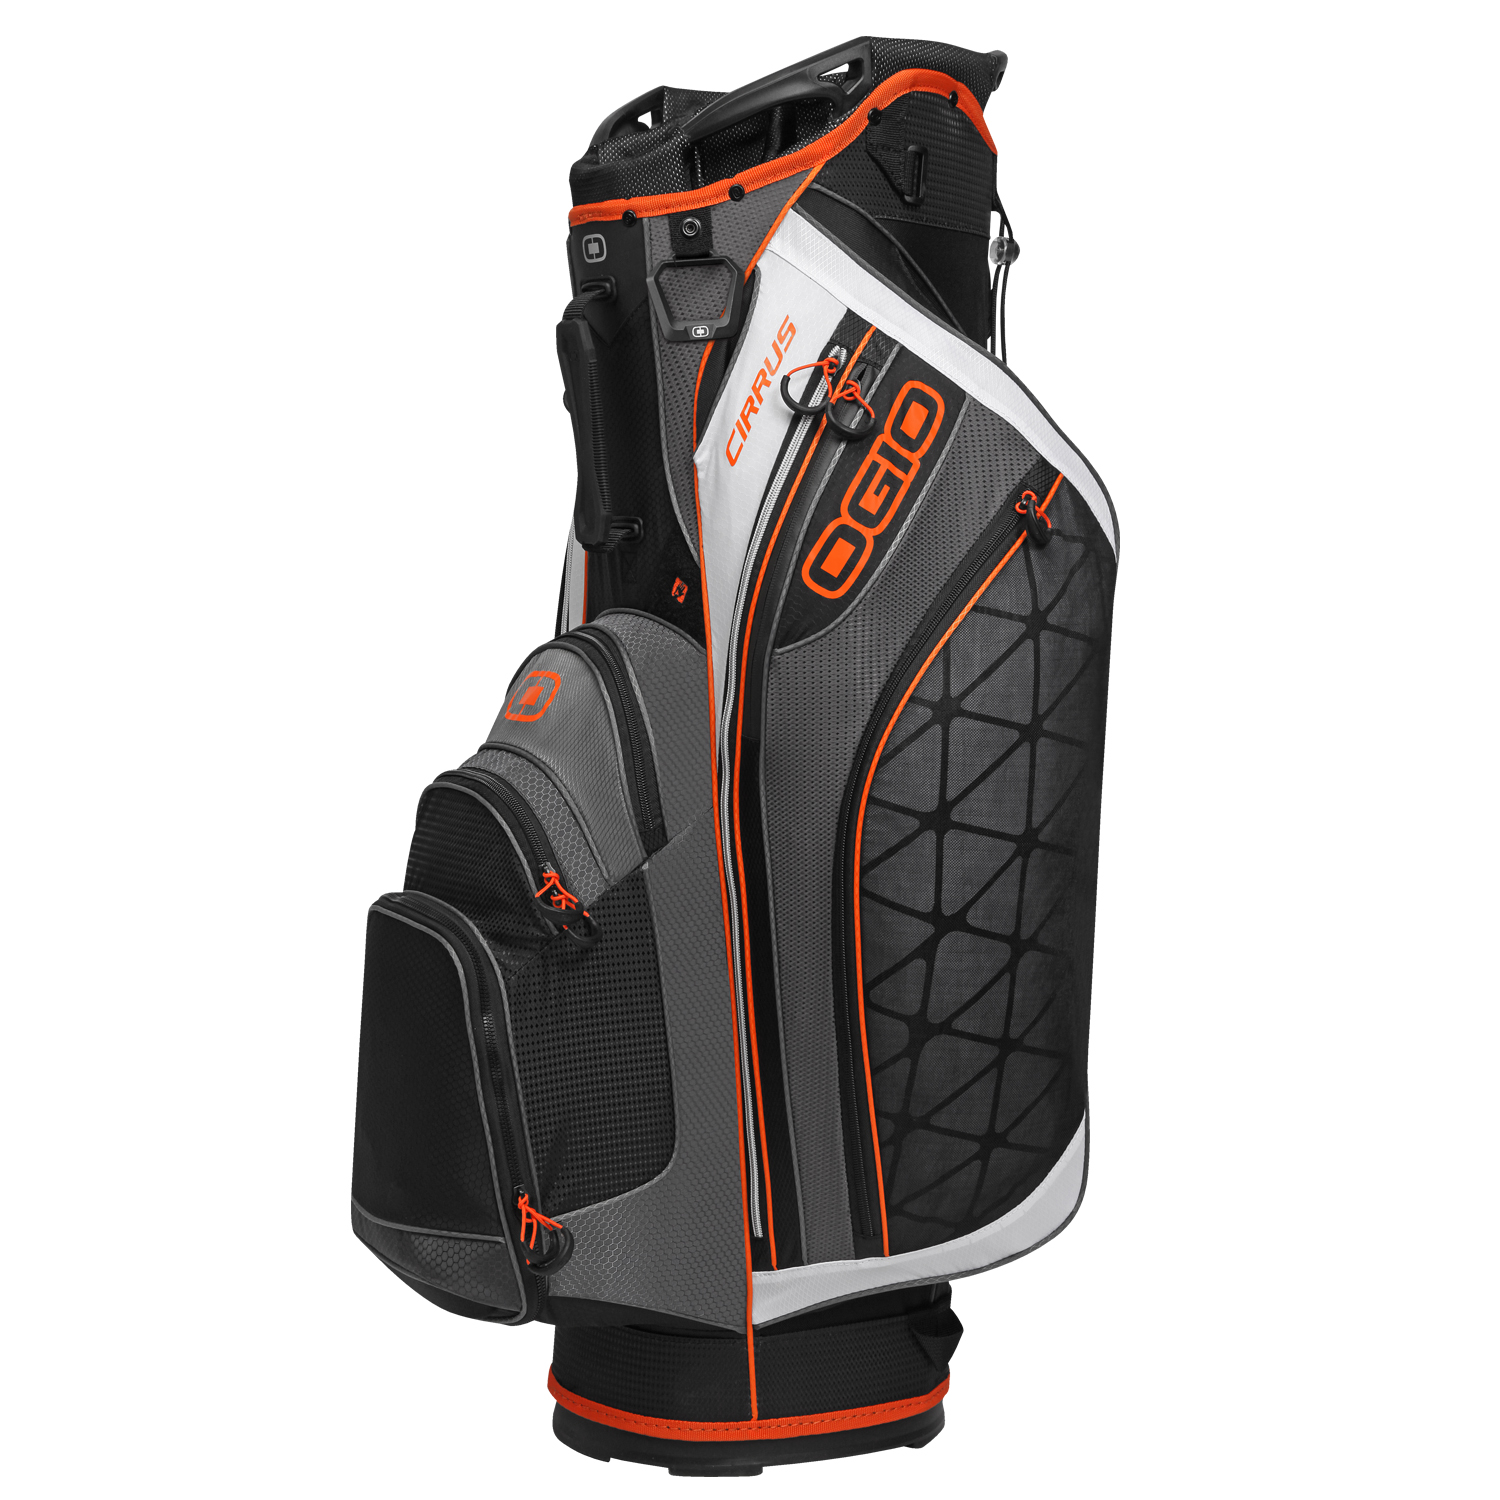 NEW Ogio Golf Cirrus Cart 2015 Bag 14-way Diamond Top UltraLite Black